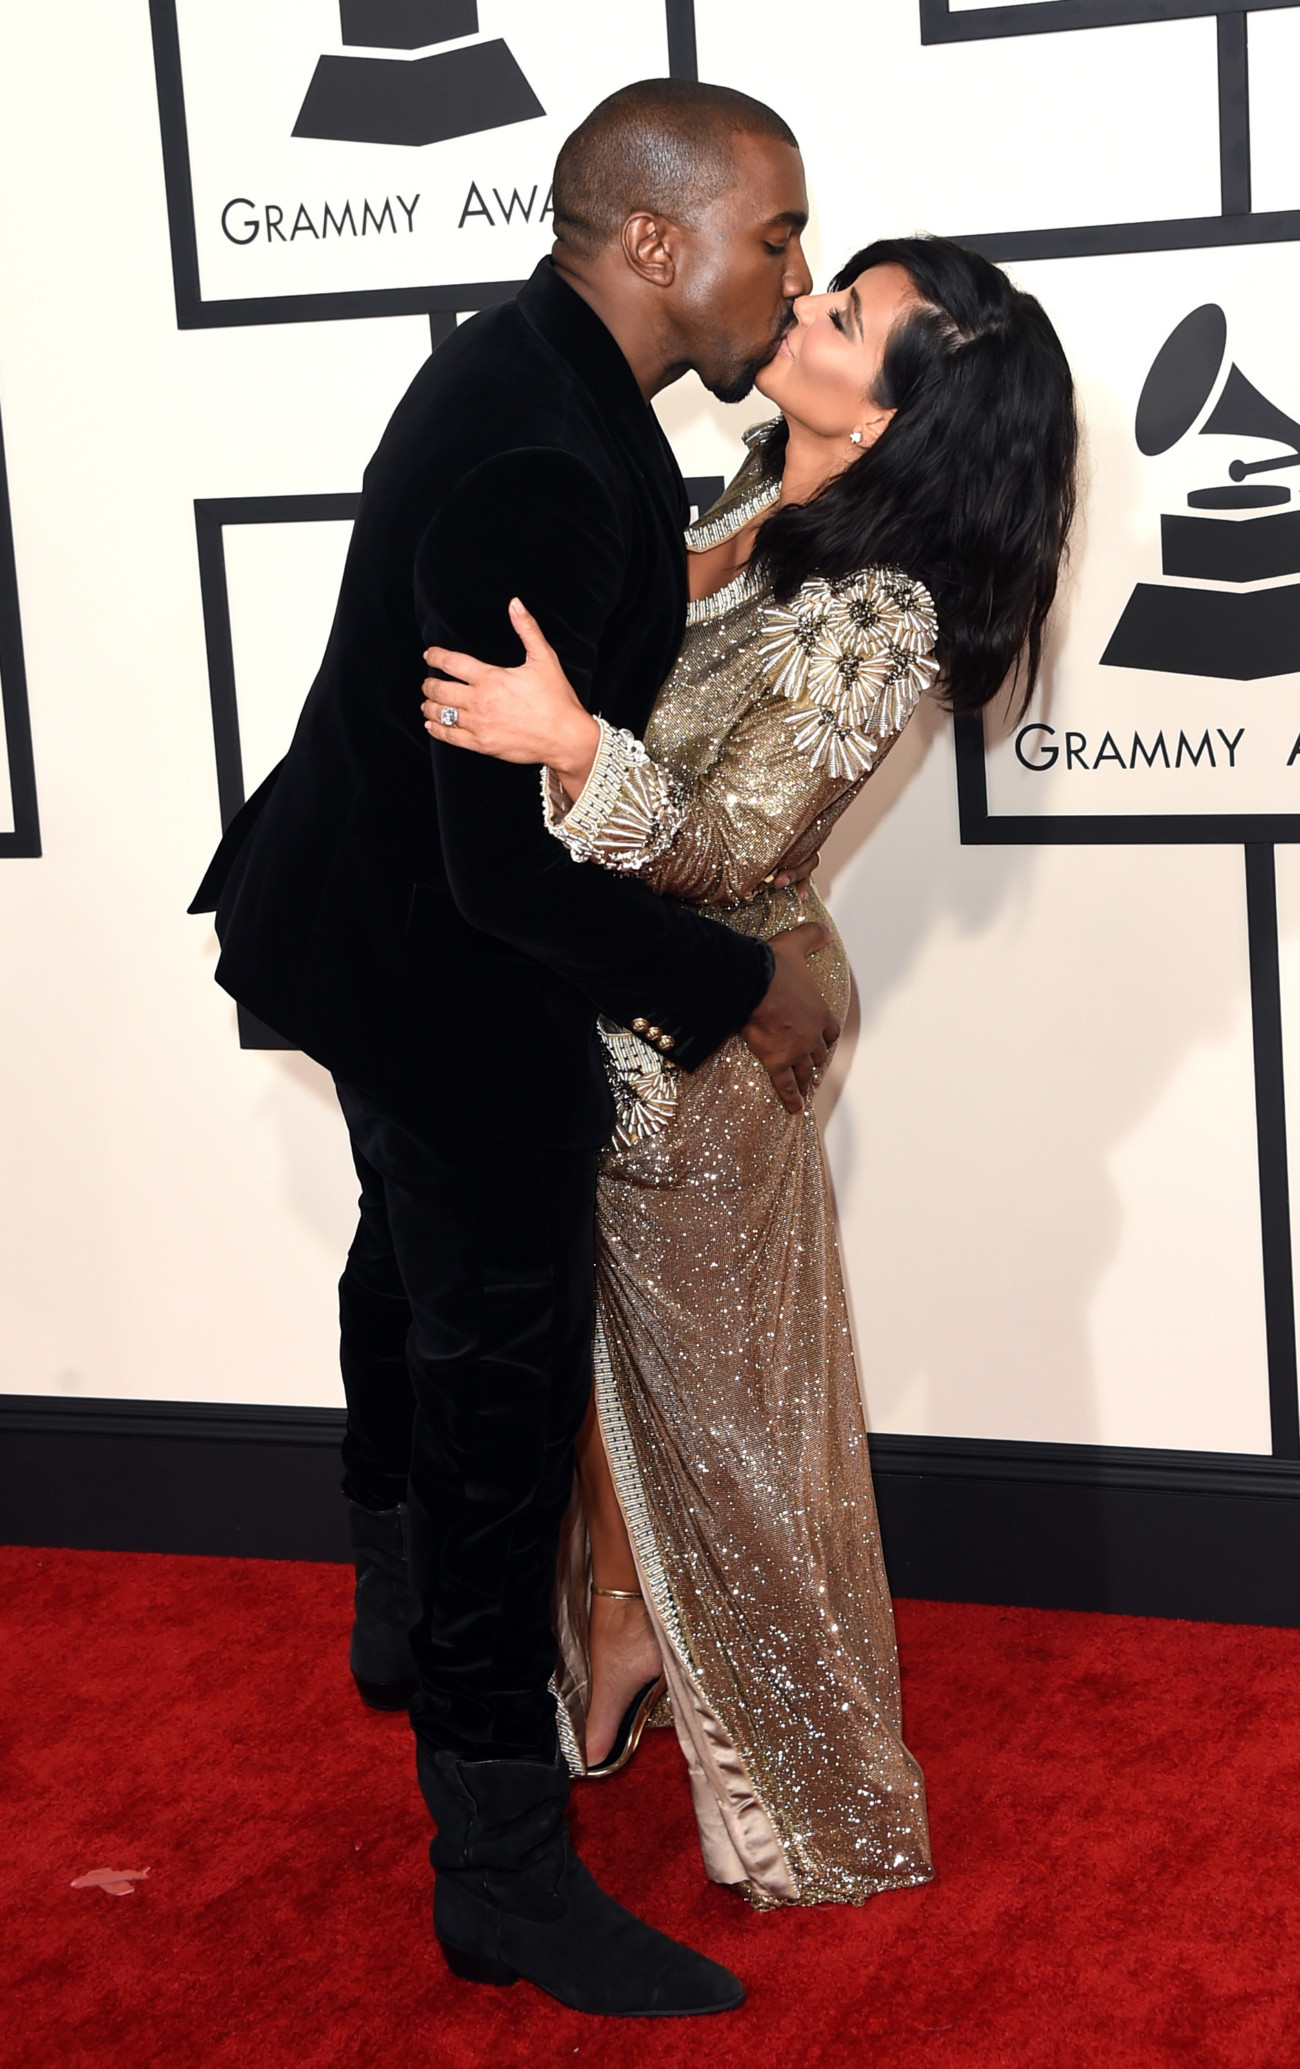 LOS ANGELES, CA - FEBRUARY 08:  Rapper Kanye West (L) and TV personality Kim Kardashian attend The 57th Annual GRAMMY Awards at the STAPLES Center on February 8, 2015 in Los Angeles, California.  (Photo by Jason Merritt/Getty Images)